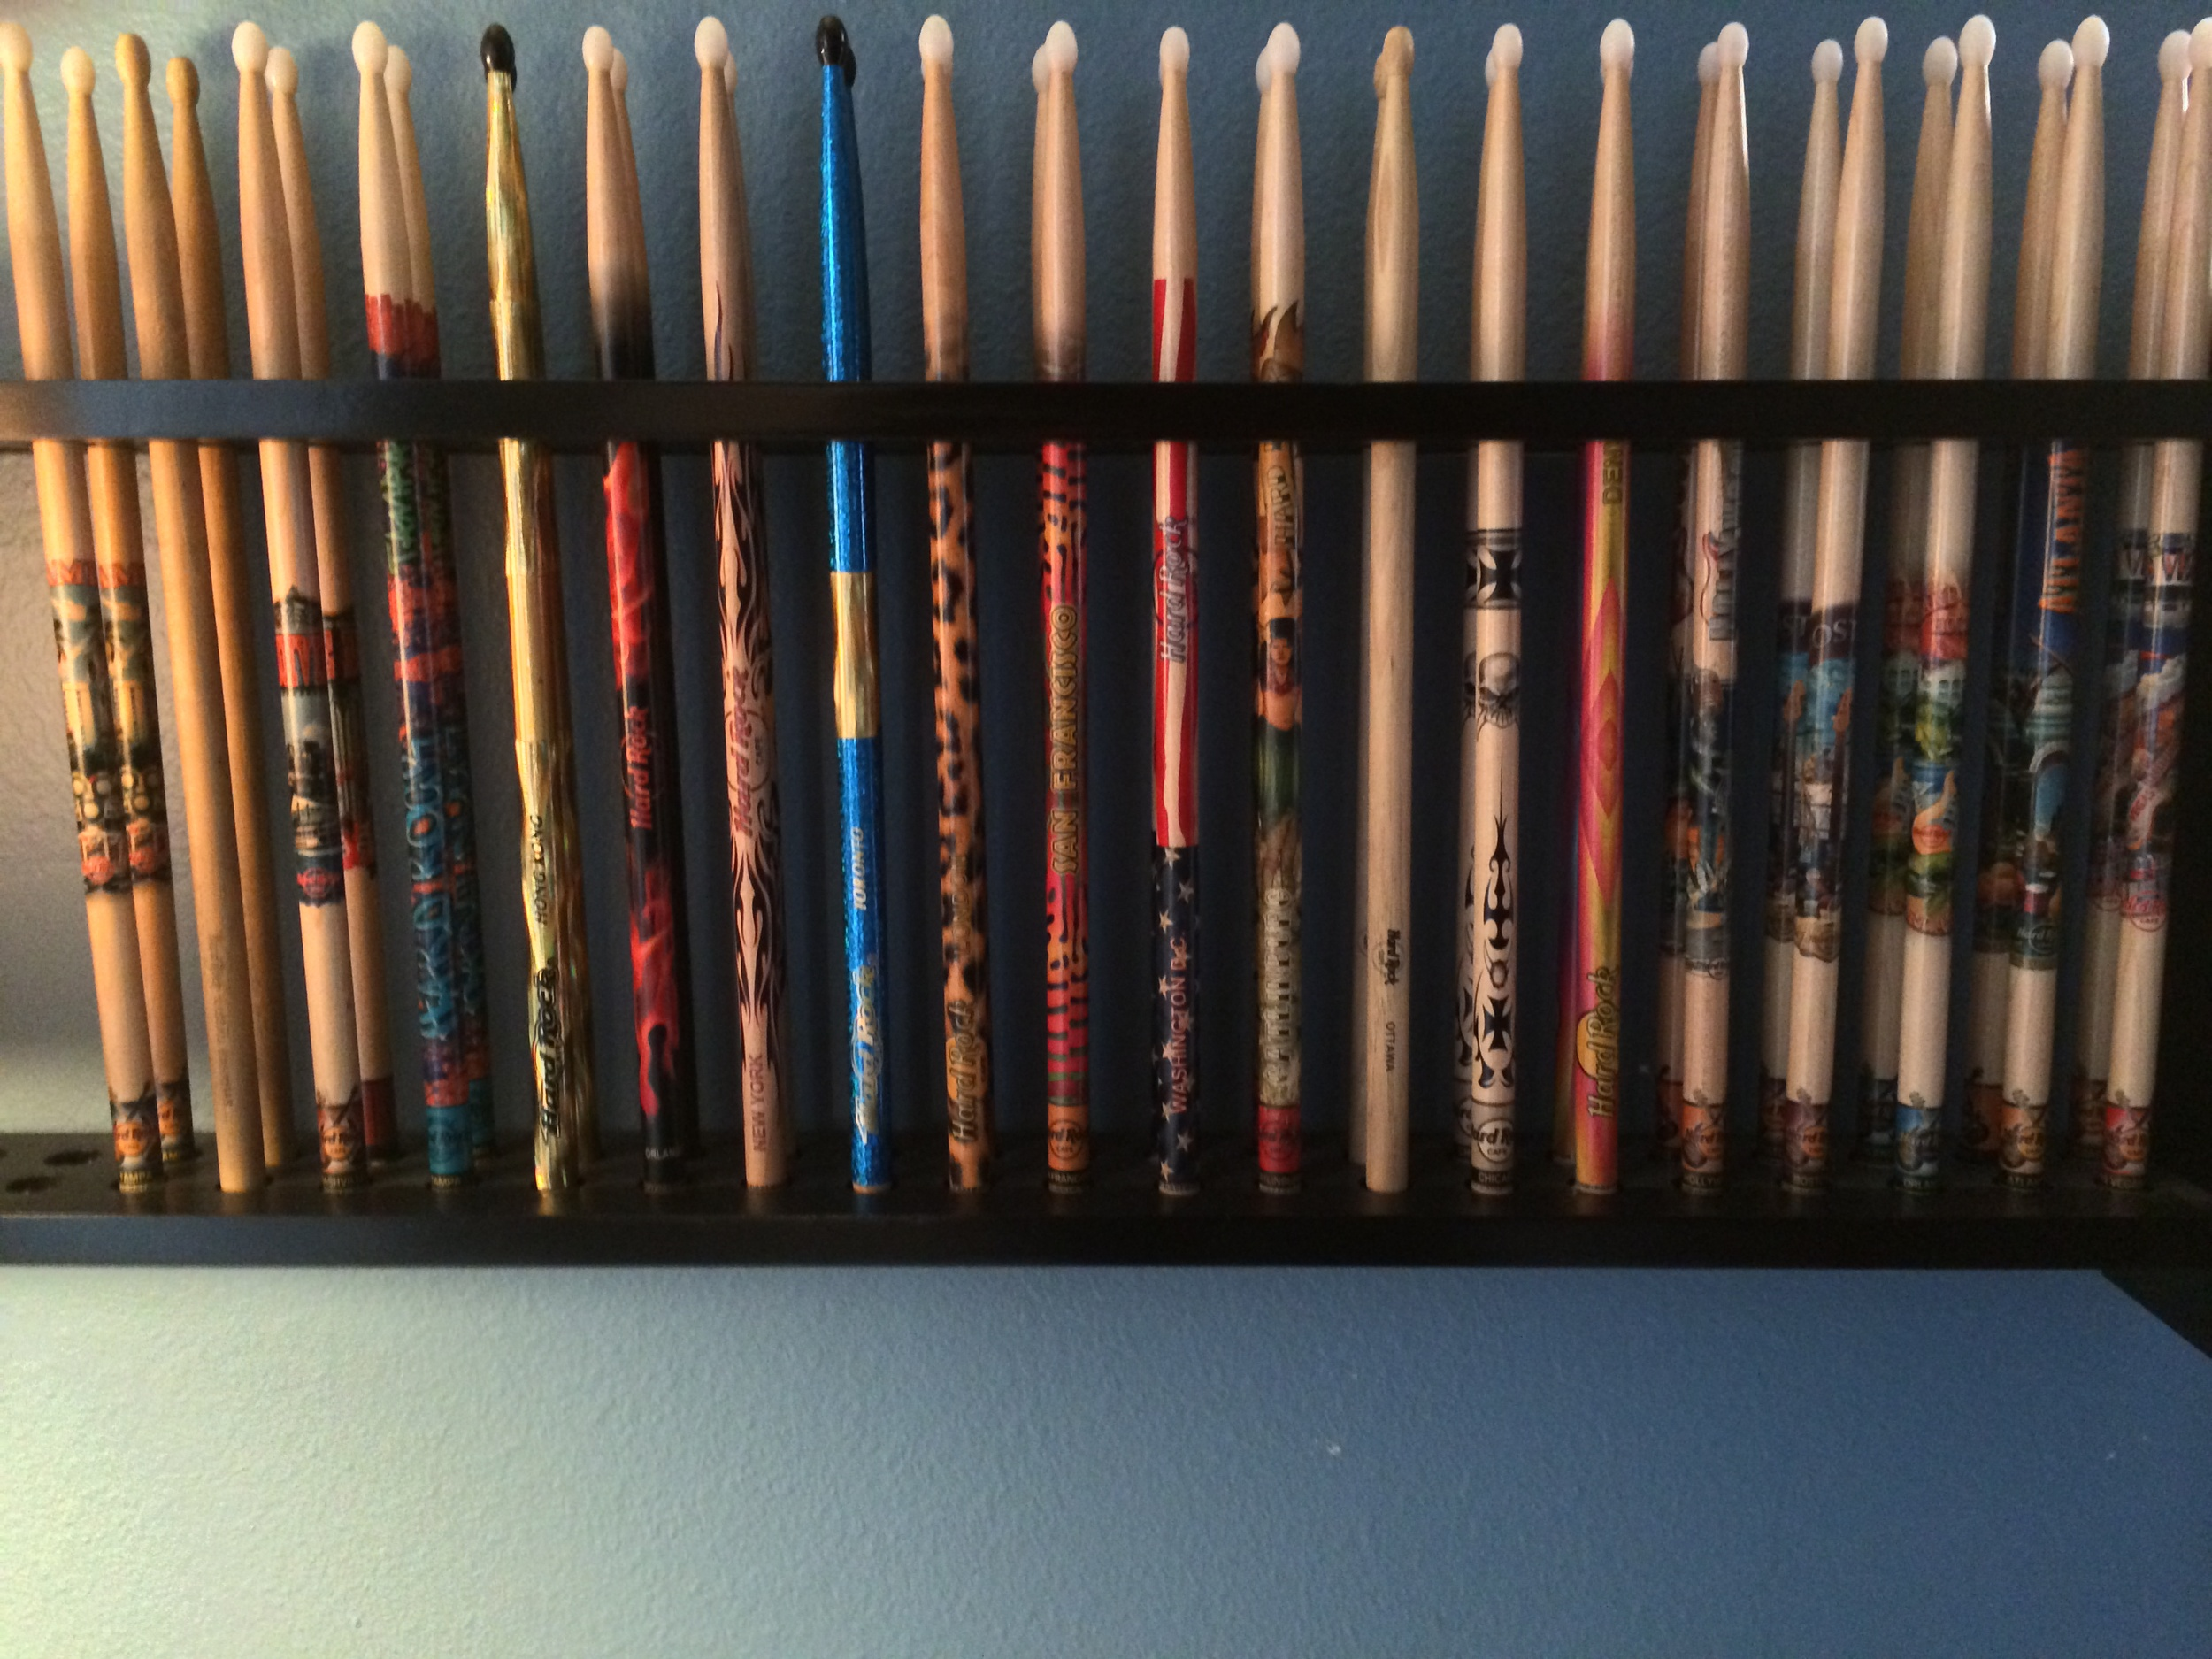 20 pairs of HRC sticks in a home-made display case.